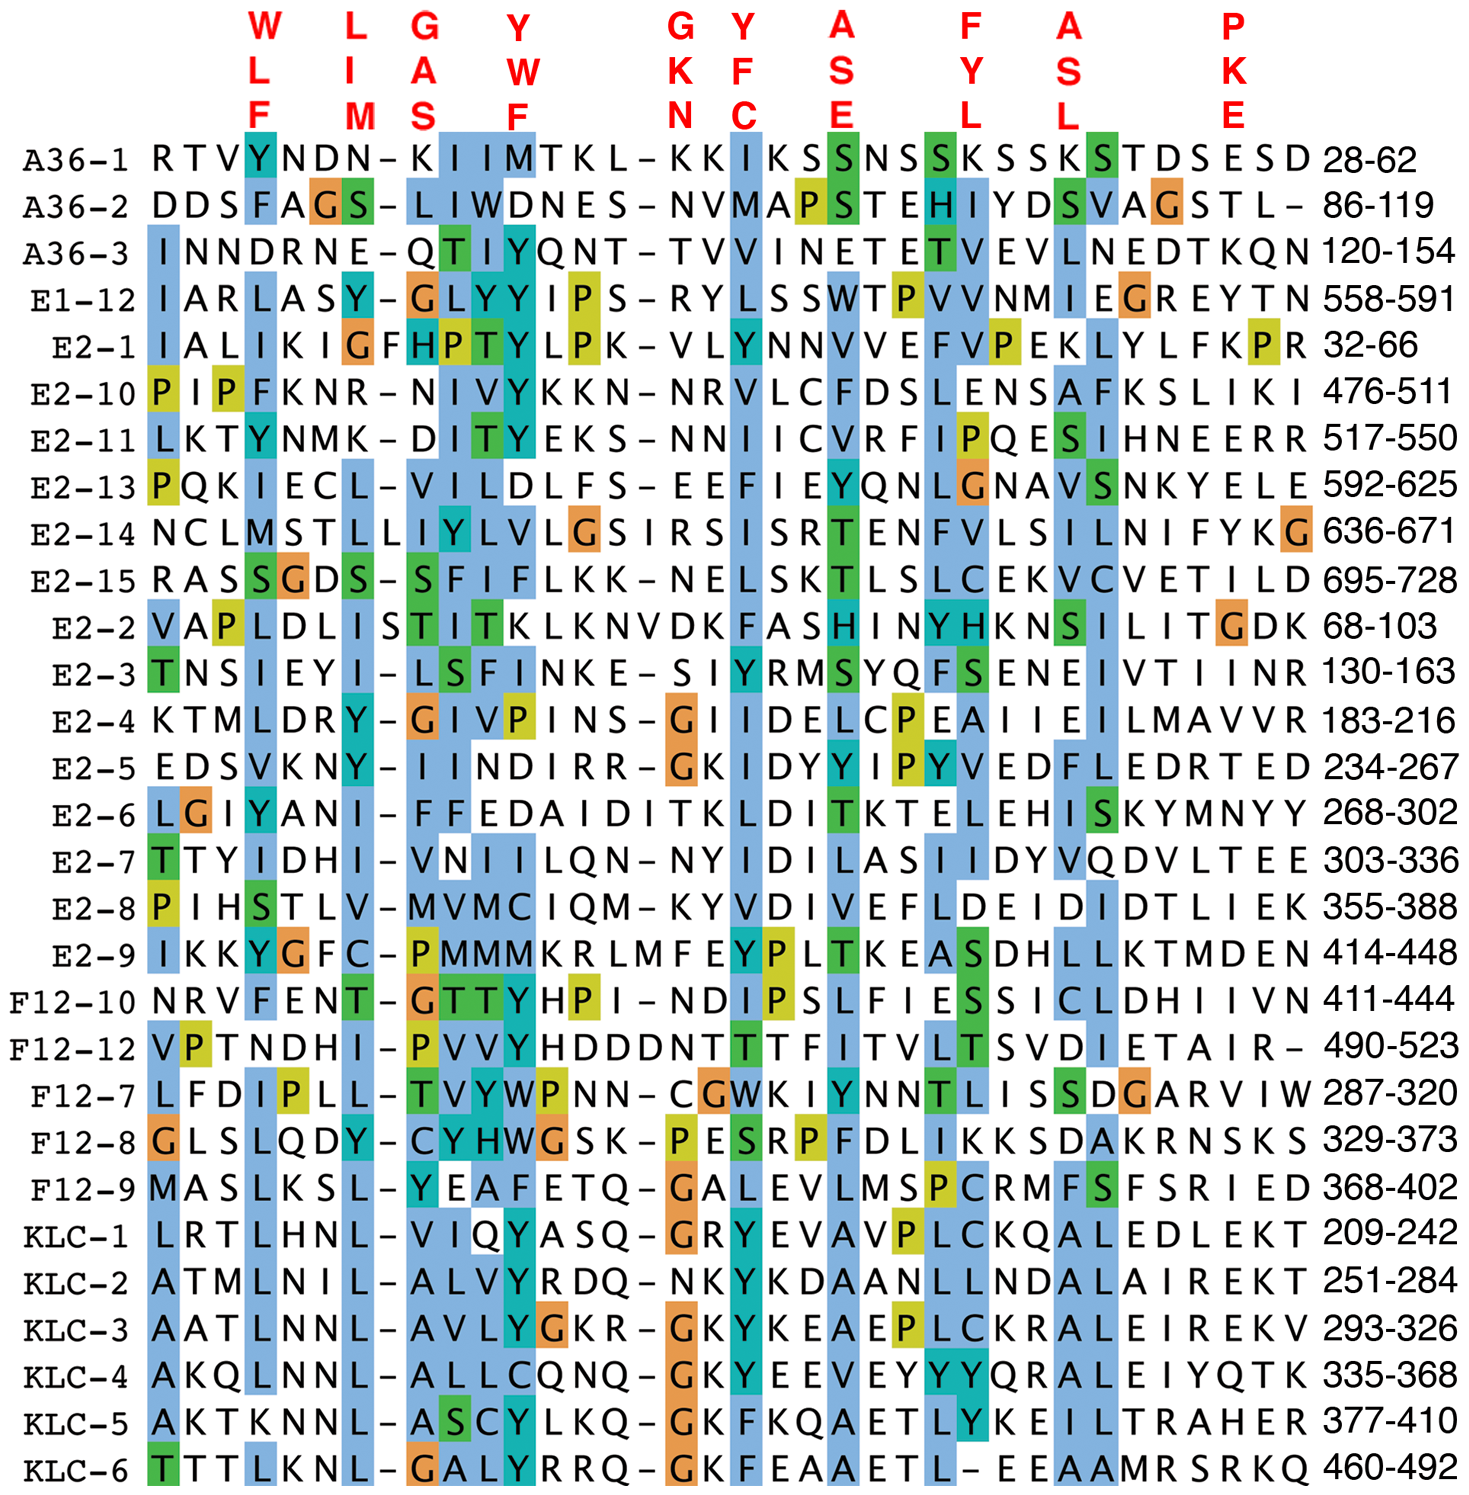 Alignment of TPRs of VACV proteins F12, A36, and E2 with KLC TPRs.